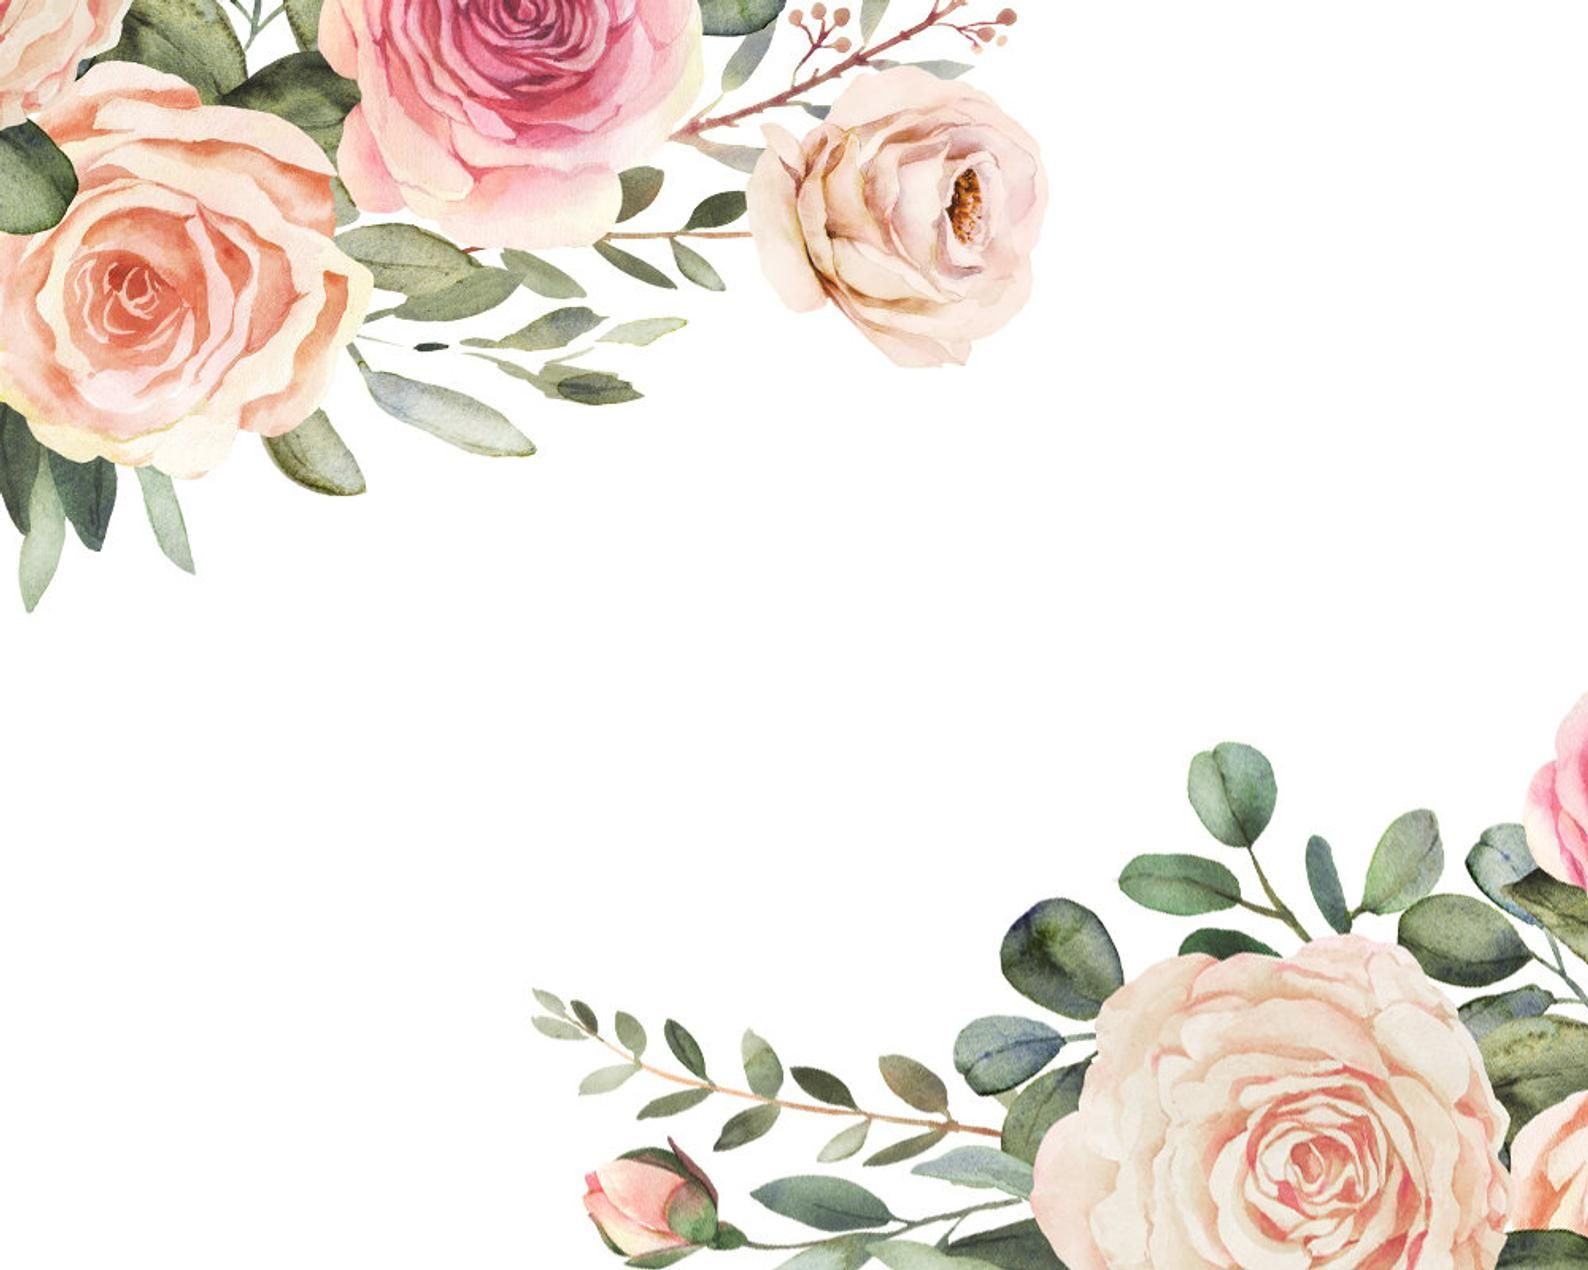 Elegant watercolor clipart with roses and eucalyptus